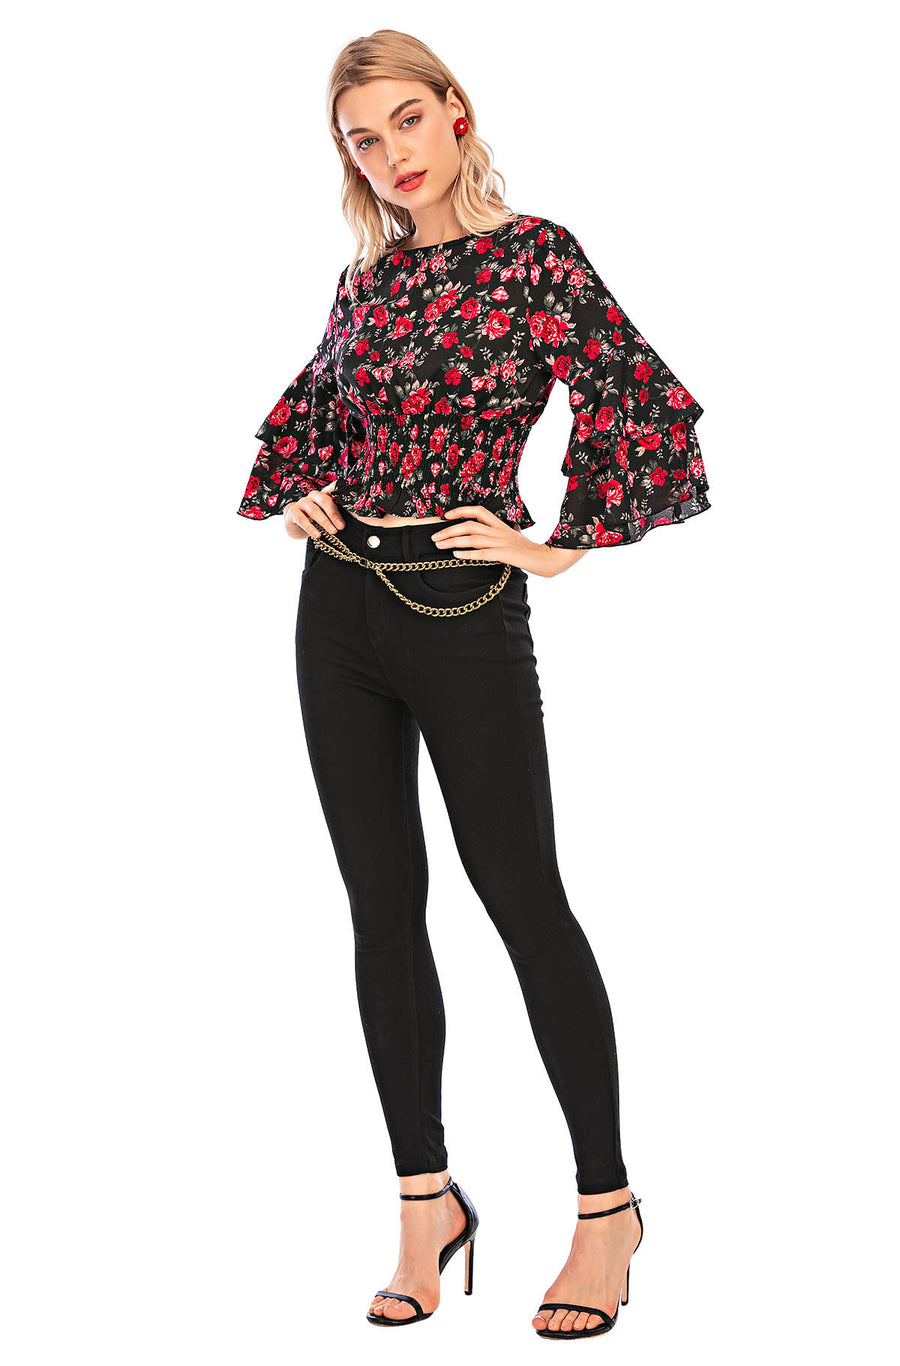 Floral top with smocked waist and  flare sleeves